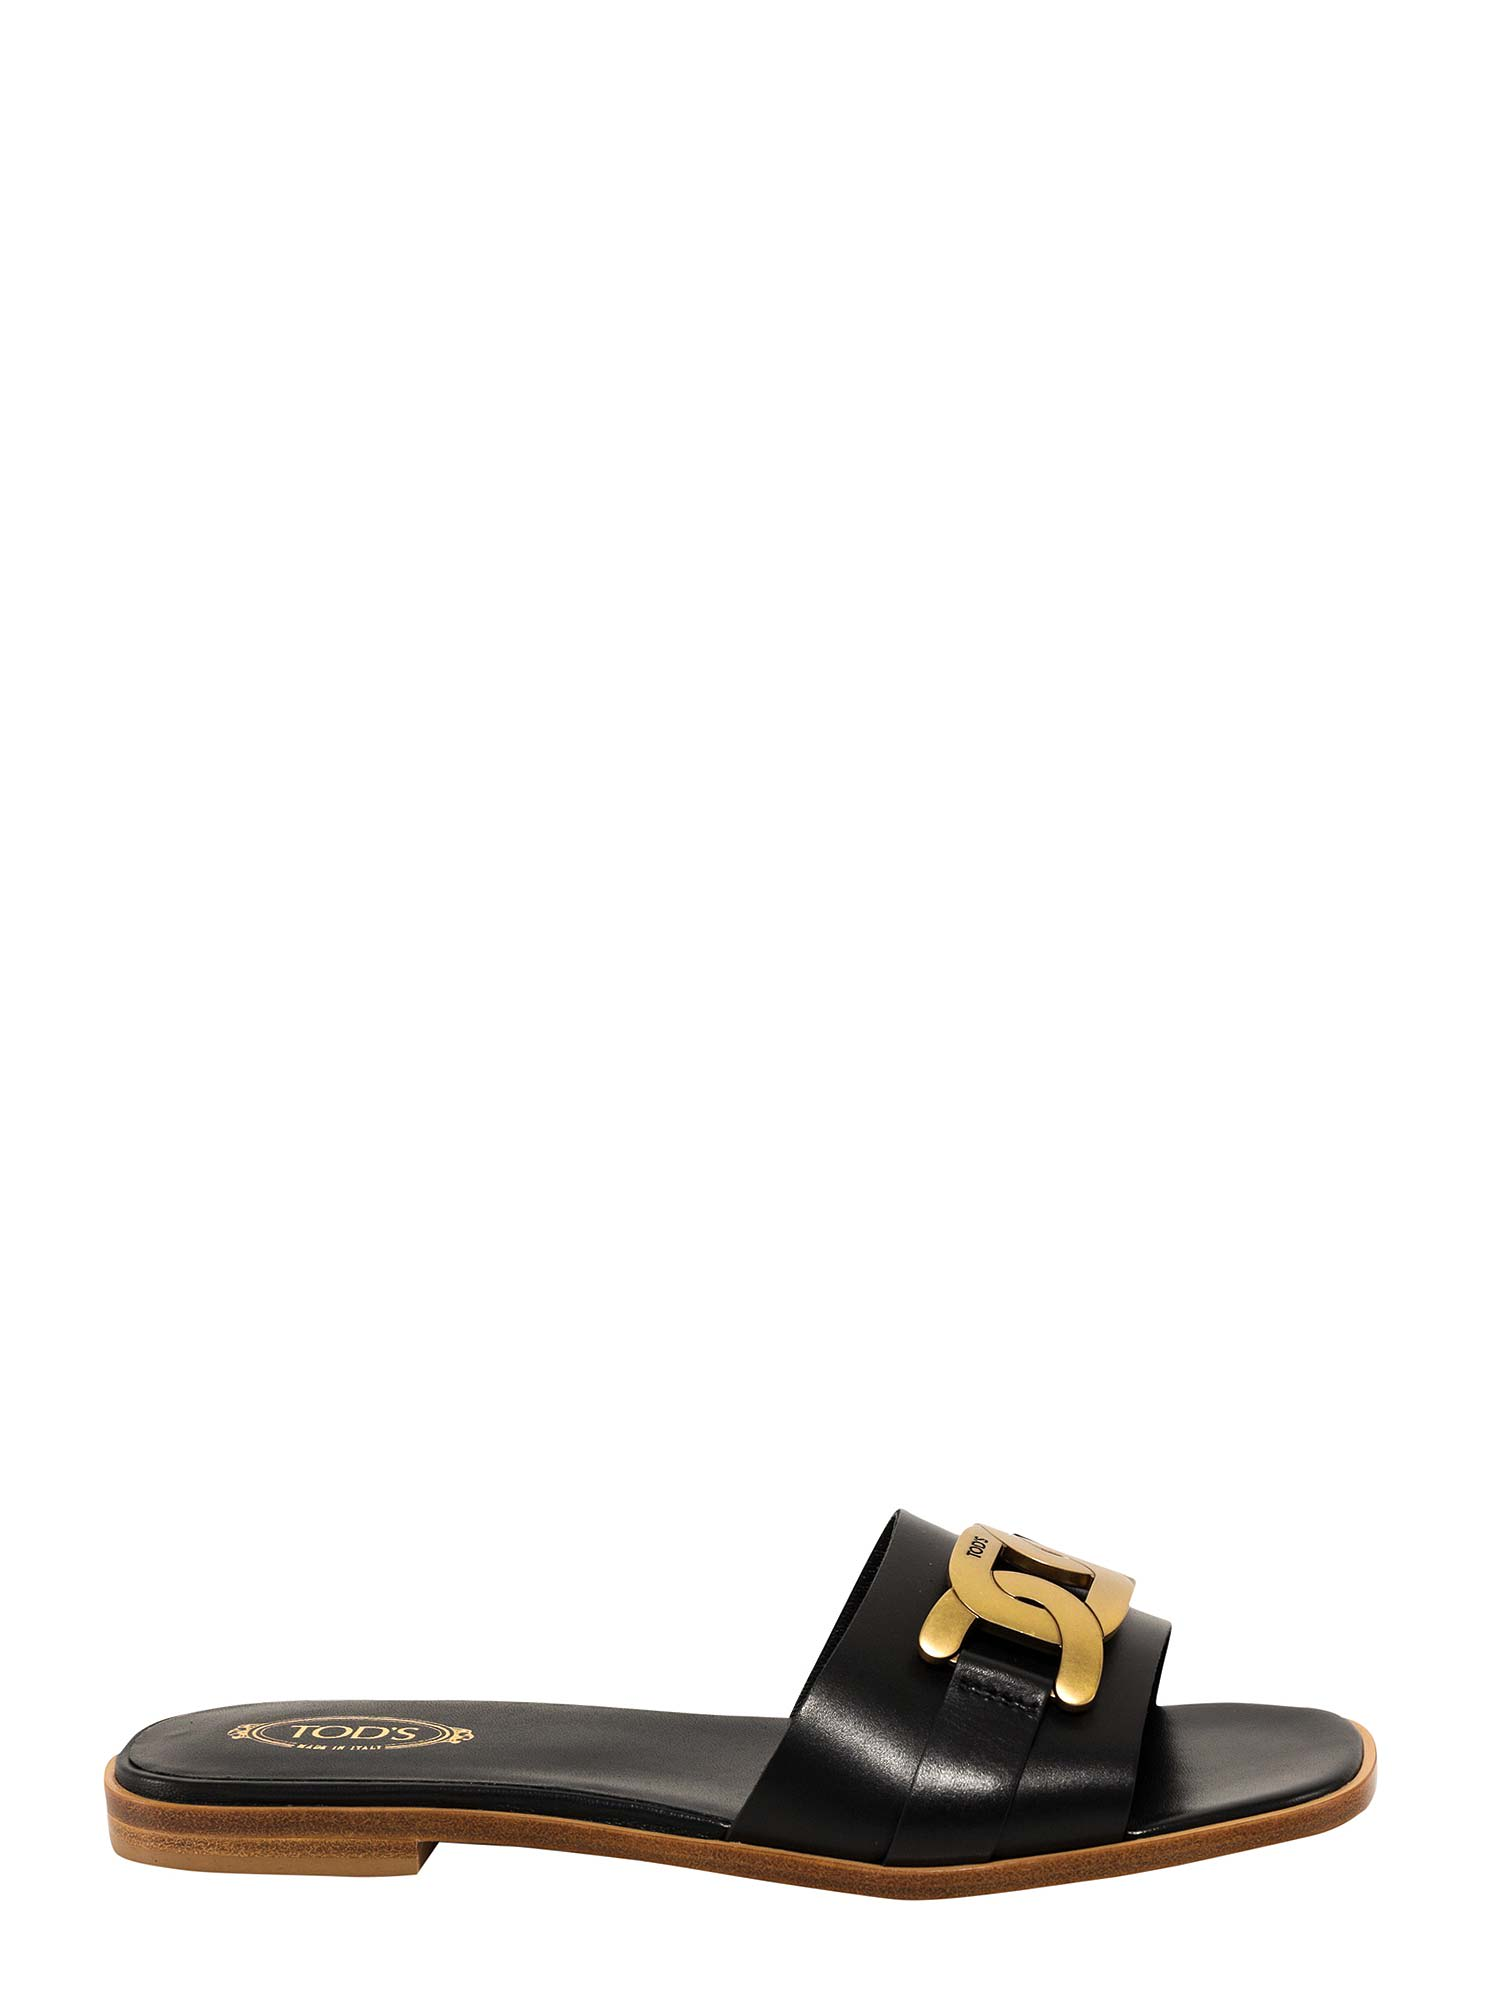 Tods Flat Sandals